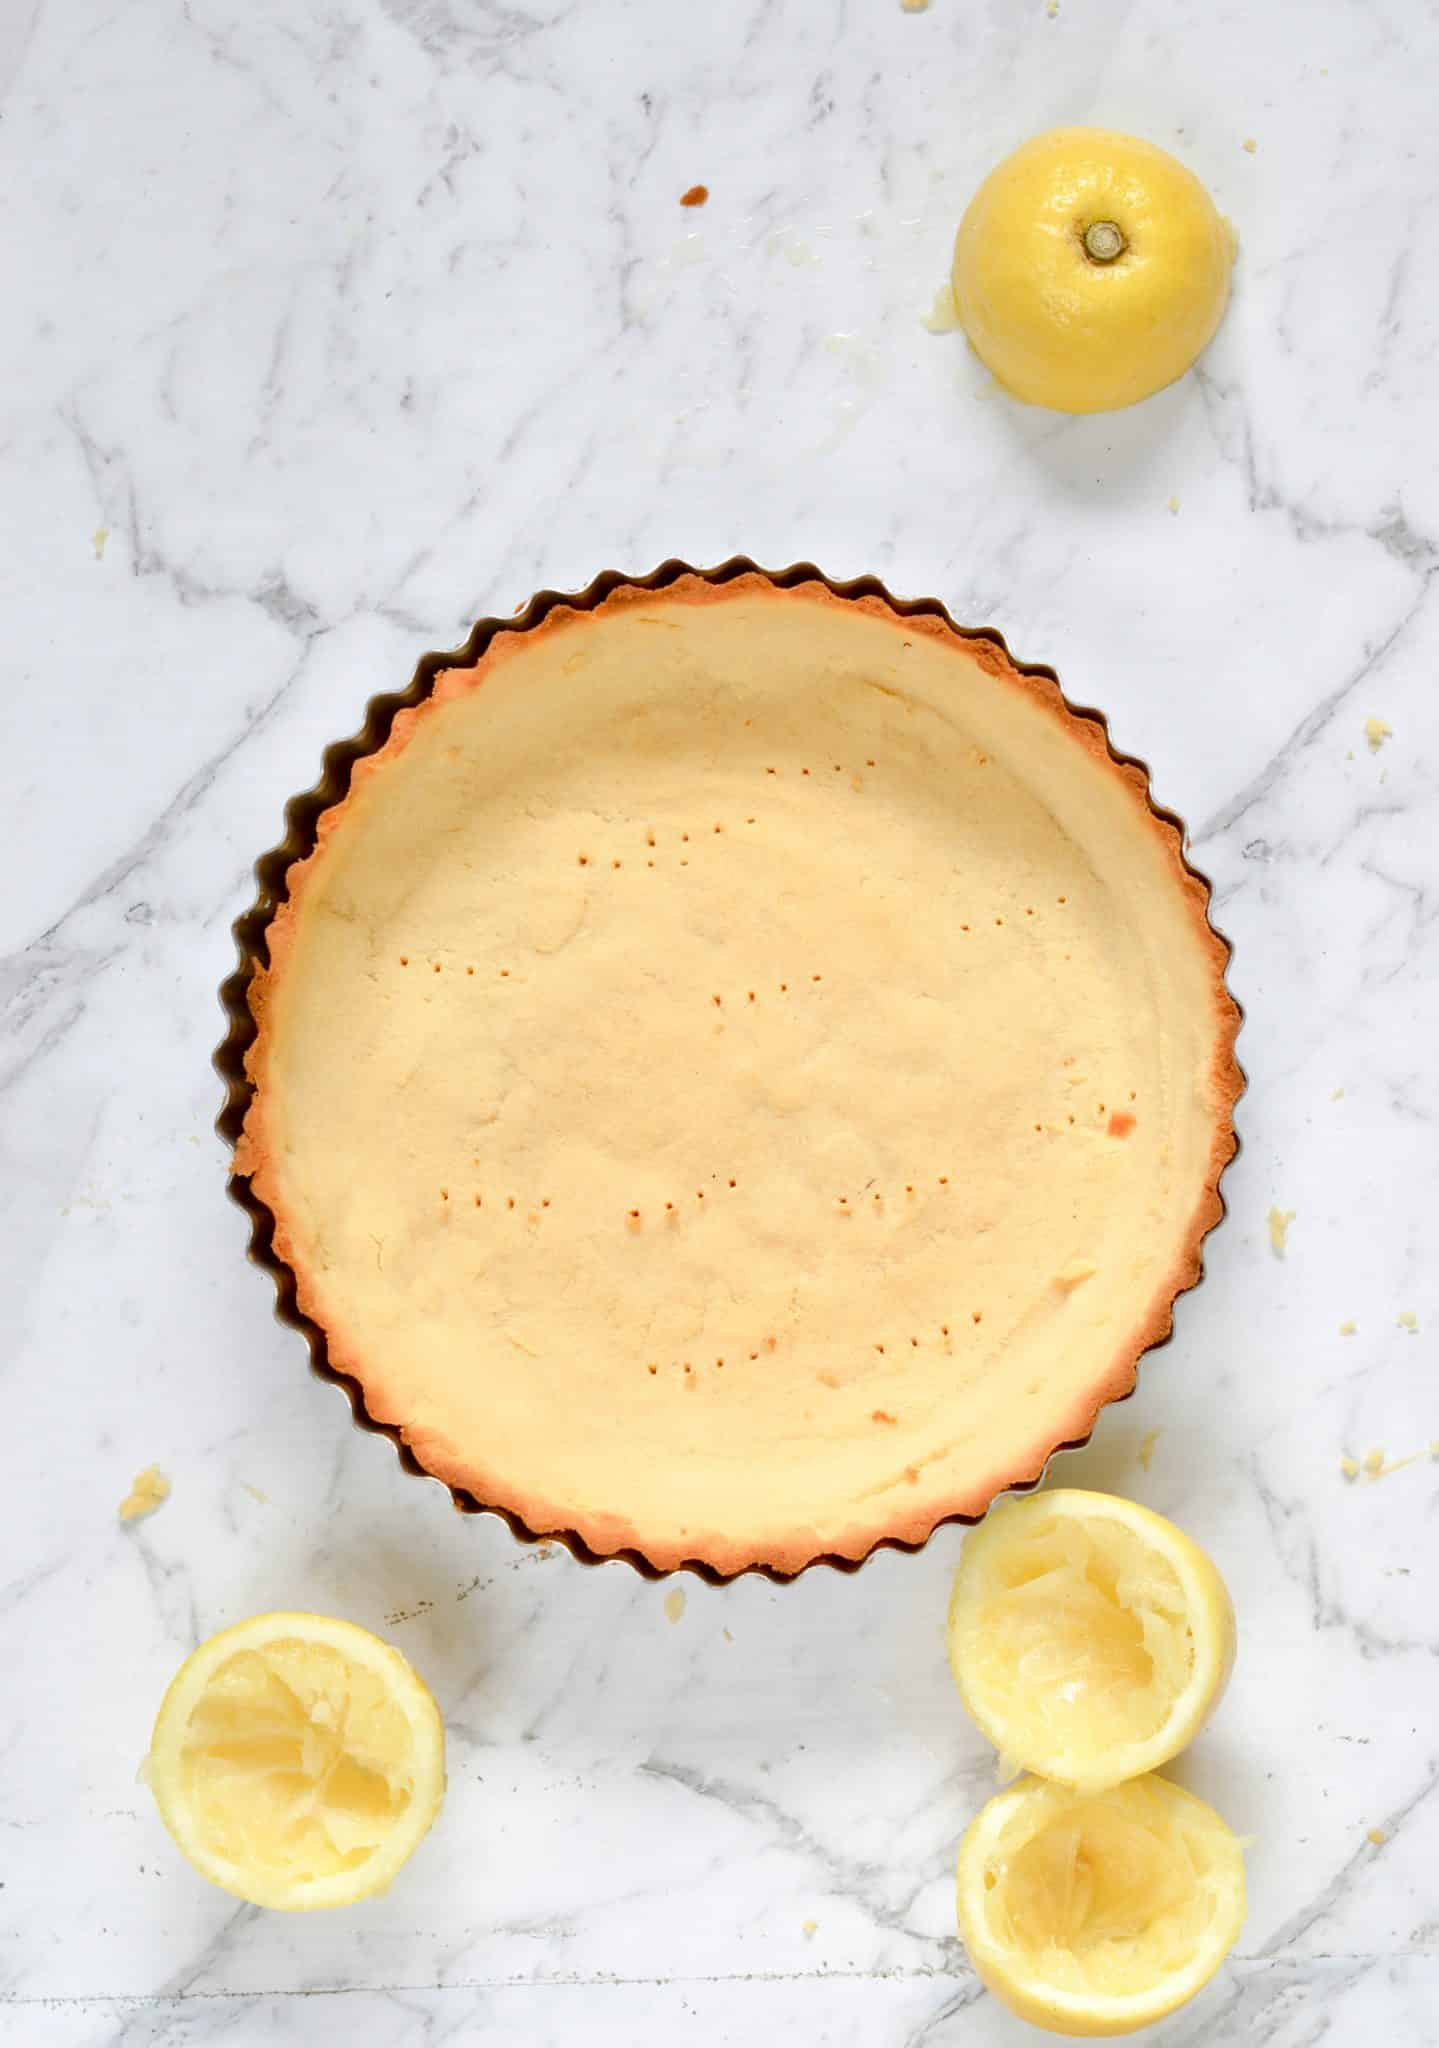 Coconut flour pie crust - an easy 4 ingredients low carb, keto and paleo shortbread crust perfect for pumpkin pie or quiche.